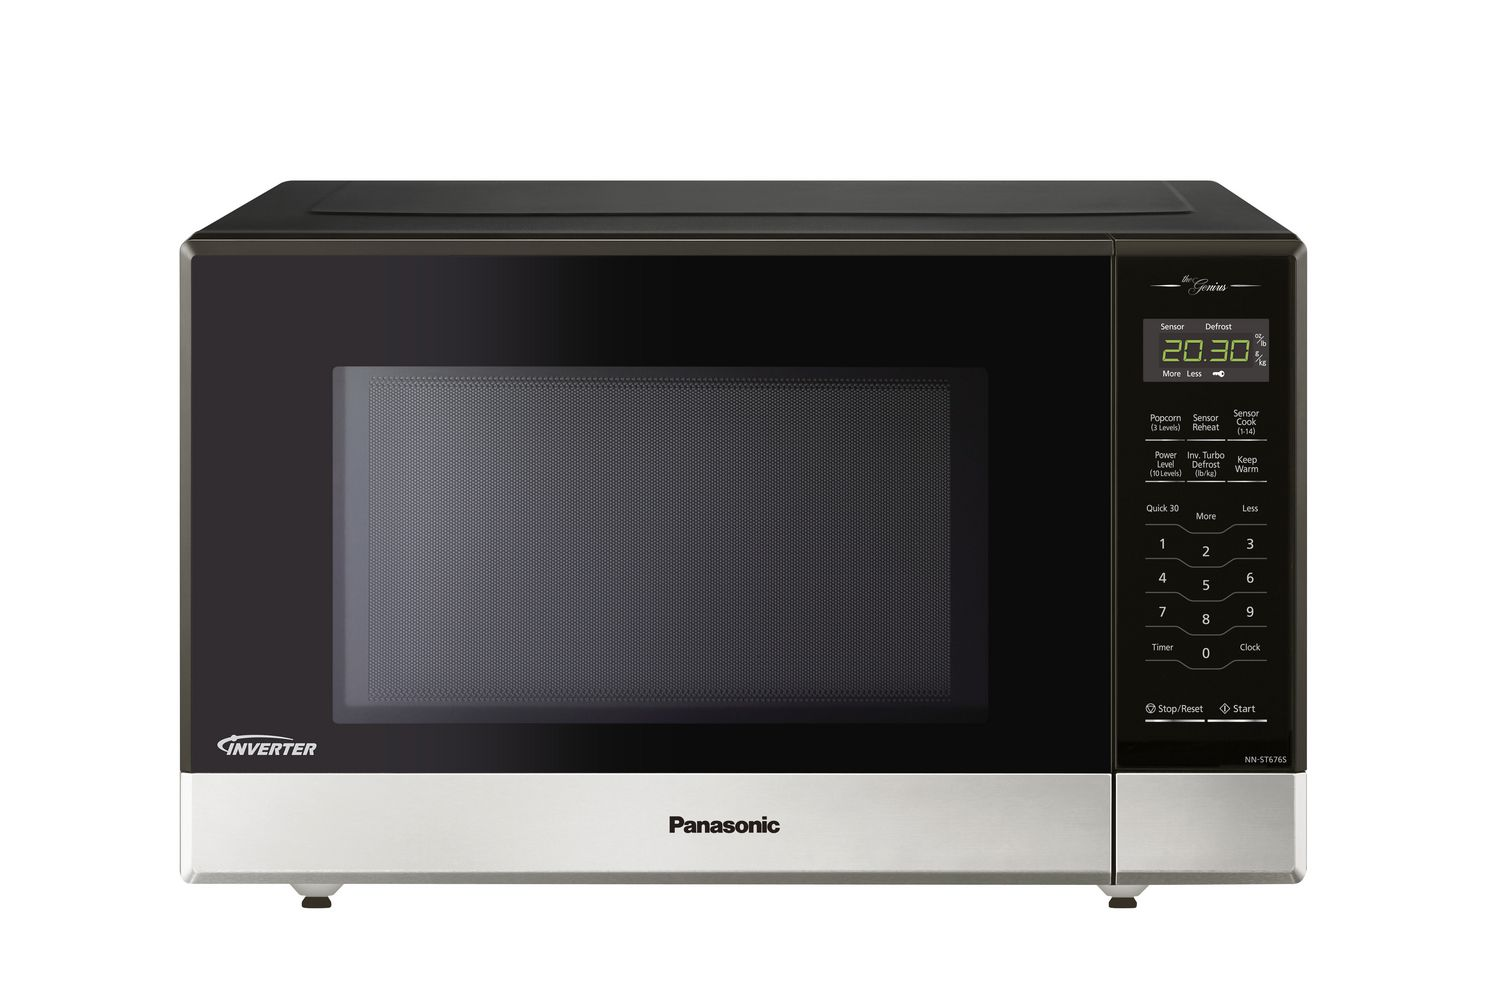 Panasonic Nnst676s With Genius And Inverter Technology